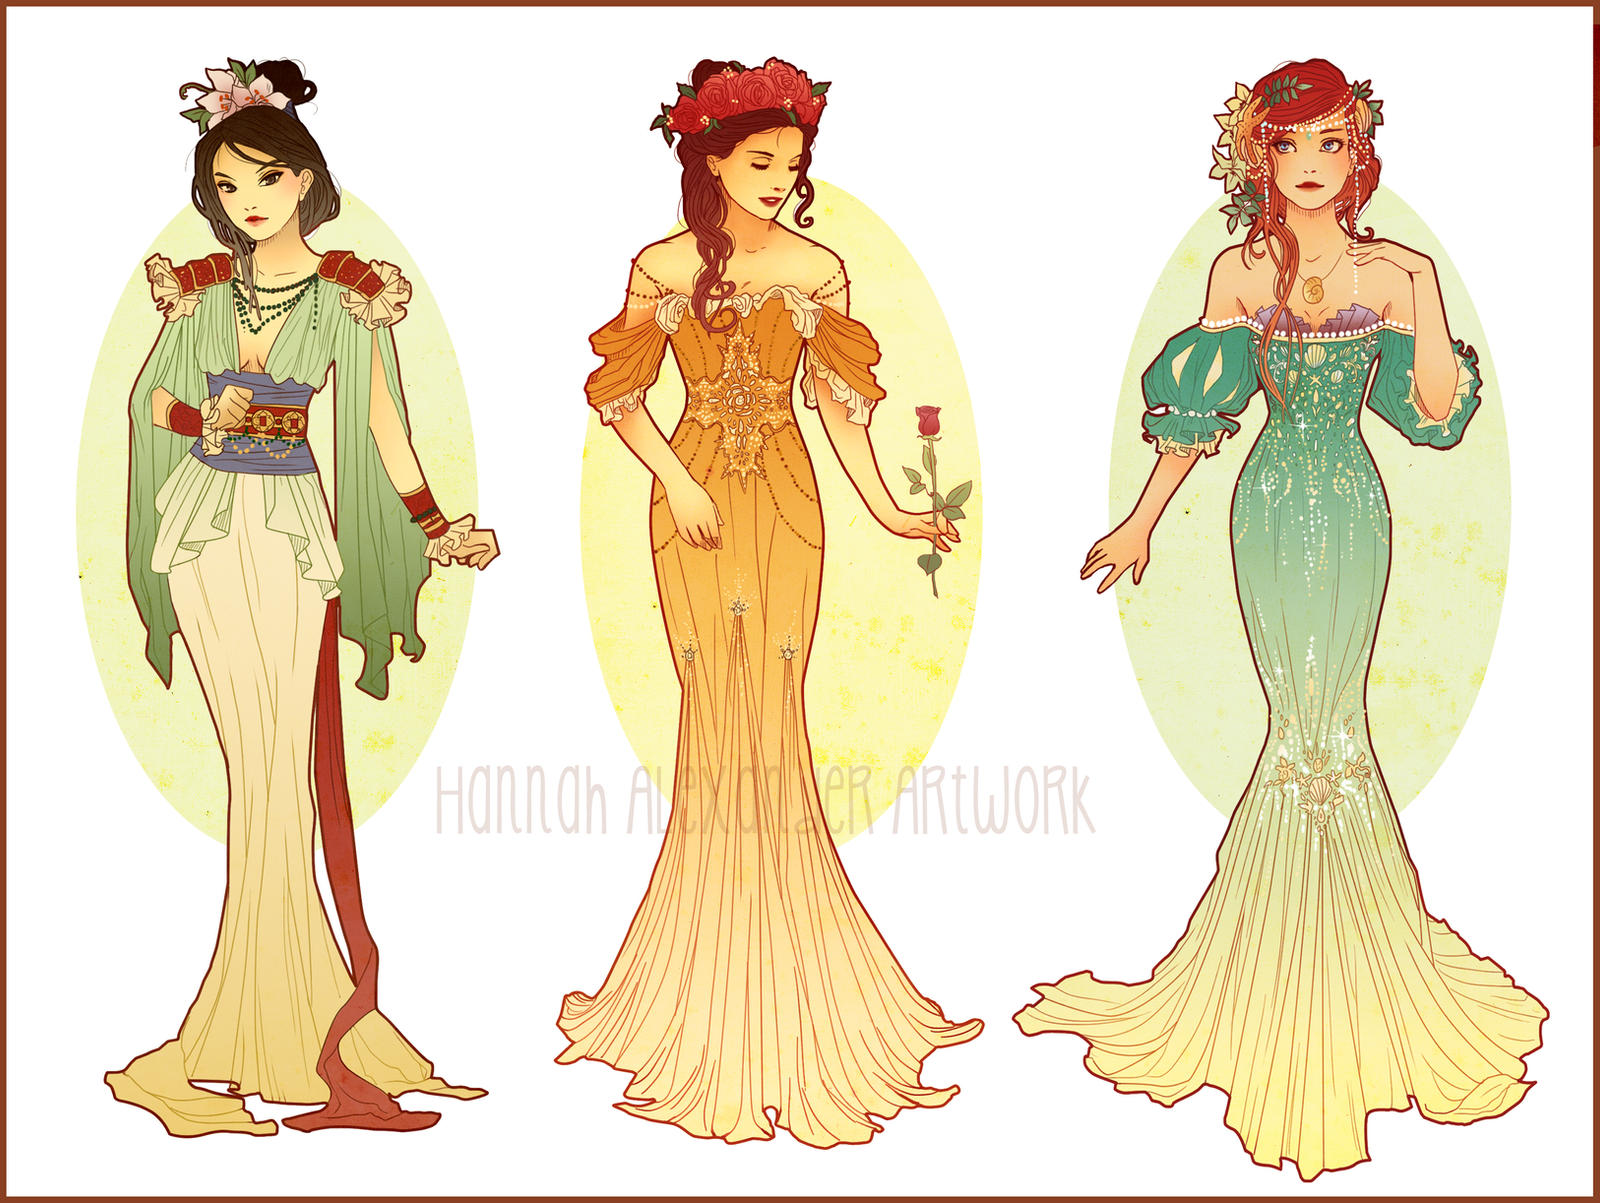 Art Nouveau Costume Designs I by Hannah-Alexander on DeviantArt